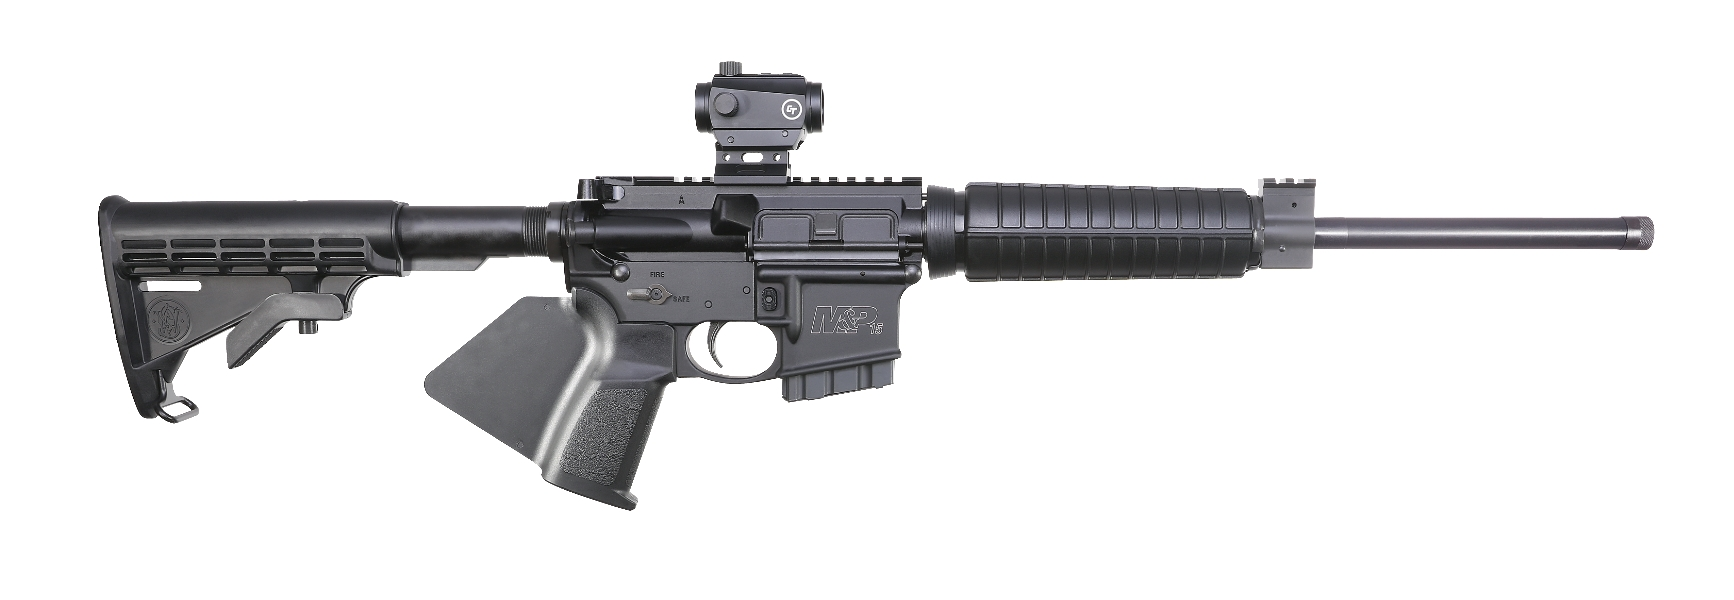 Smith and Wesson M&P15 Sport II OR 223 Rem   5.56 NATO